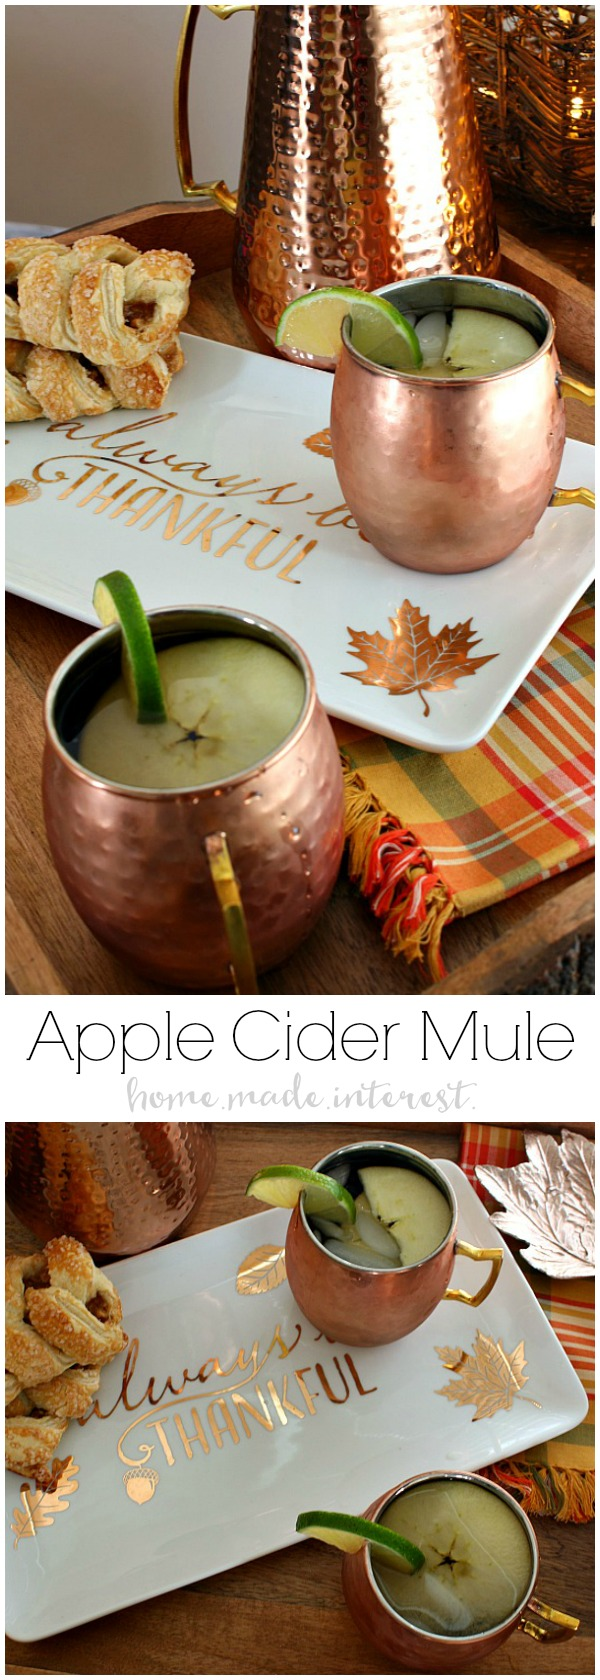 This Apple Cider Mule is going to be your favorite fall drink recipe! Apple Cider, vodka and ginger beer combined to make a fall flavored moscow mule. Need a Halloween party drink? Your friends are going to love this!